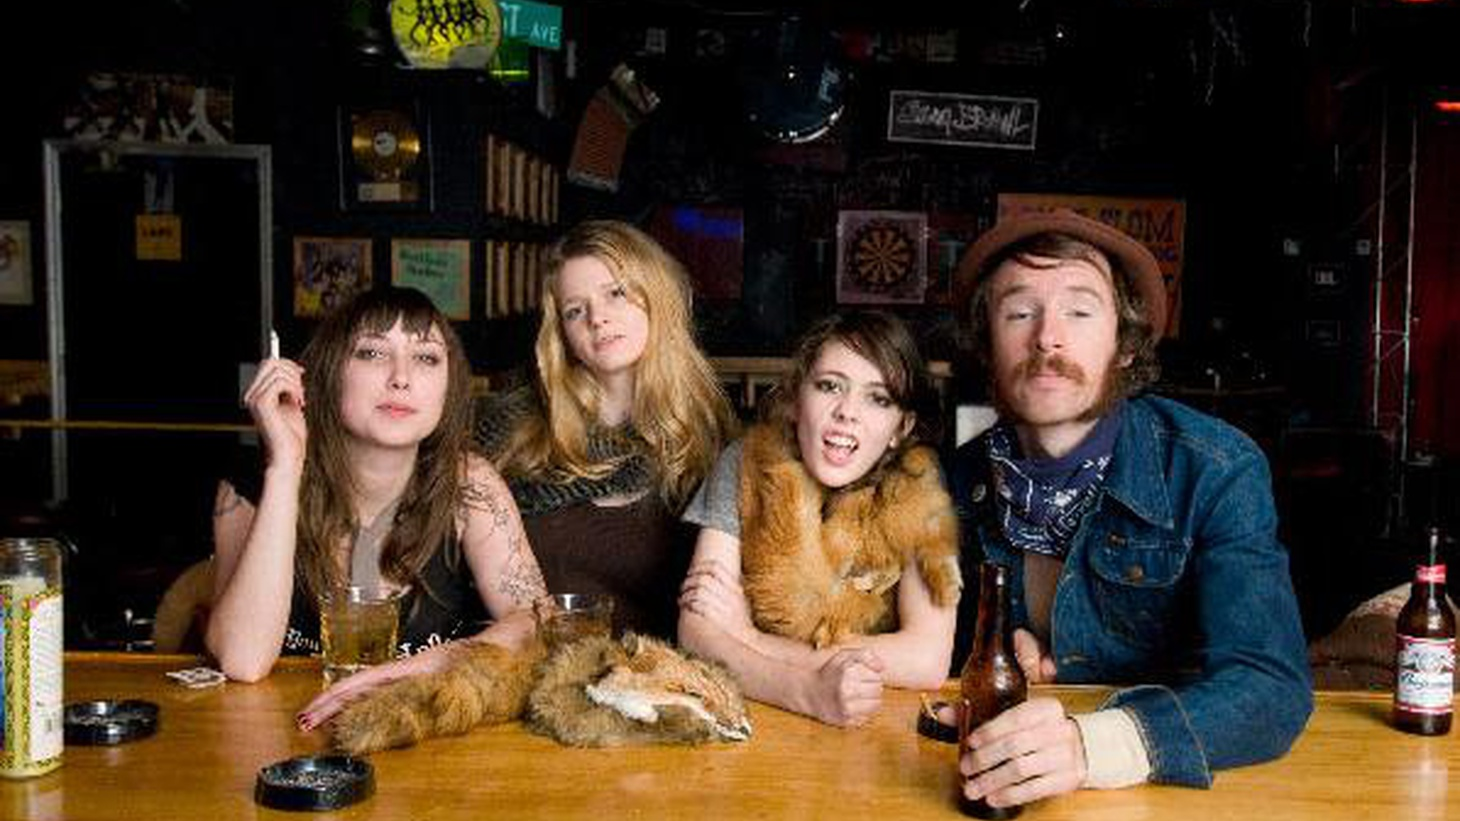 ...from their self-titled CD.   Nashville trio Those Darlins combine an old-timey country charm with a nimble rockabilly swing...